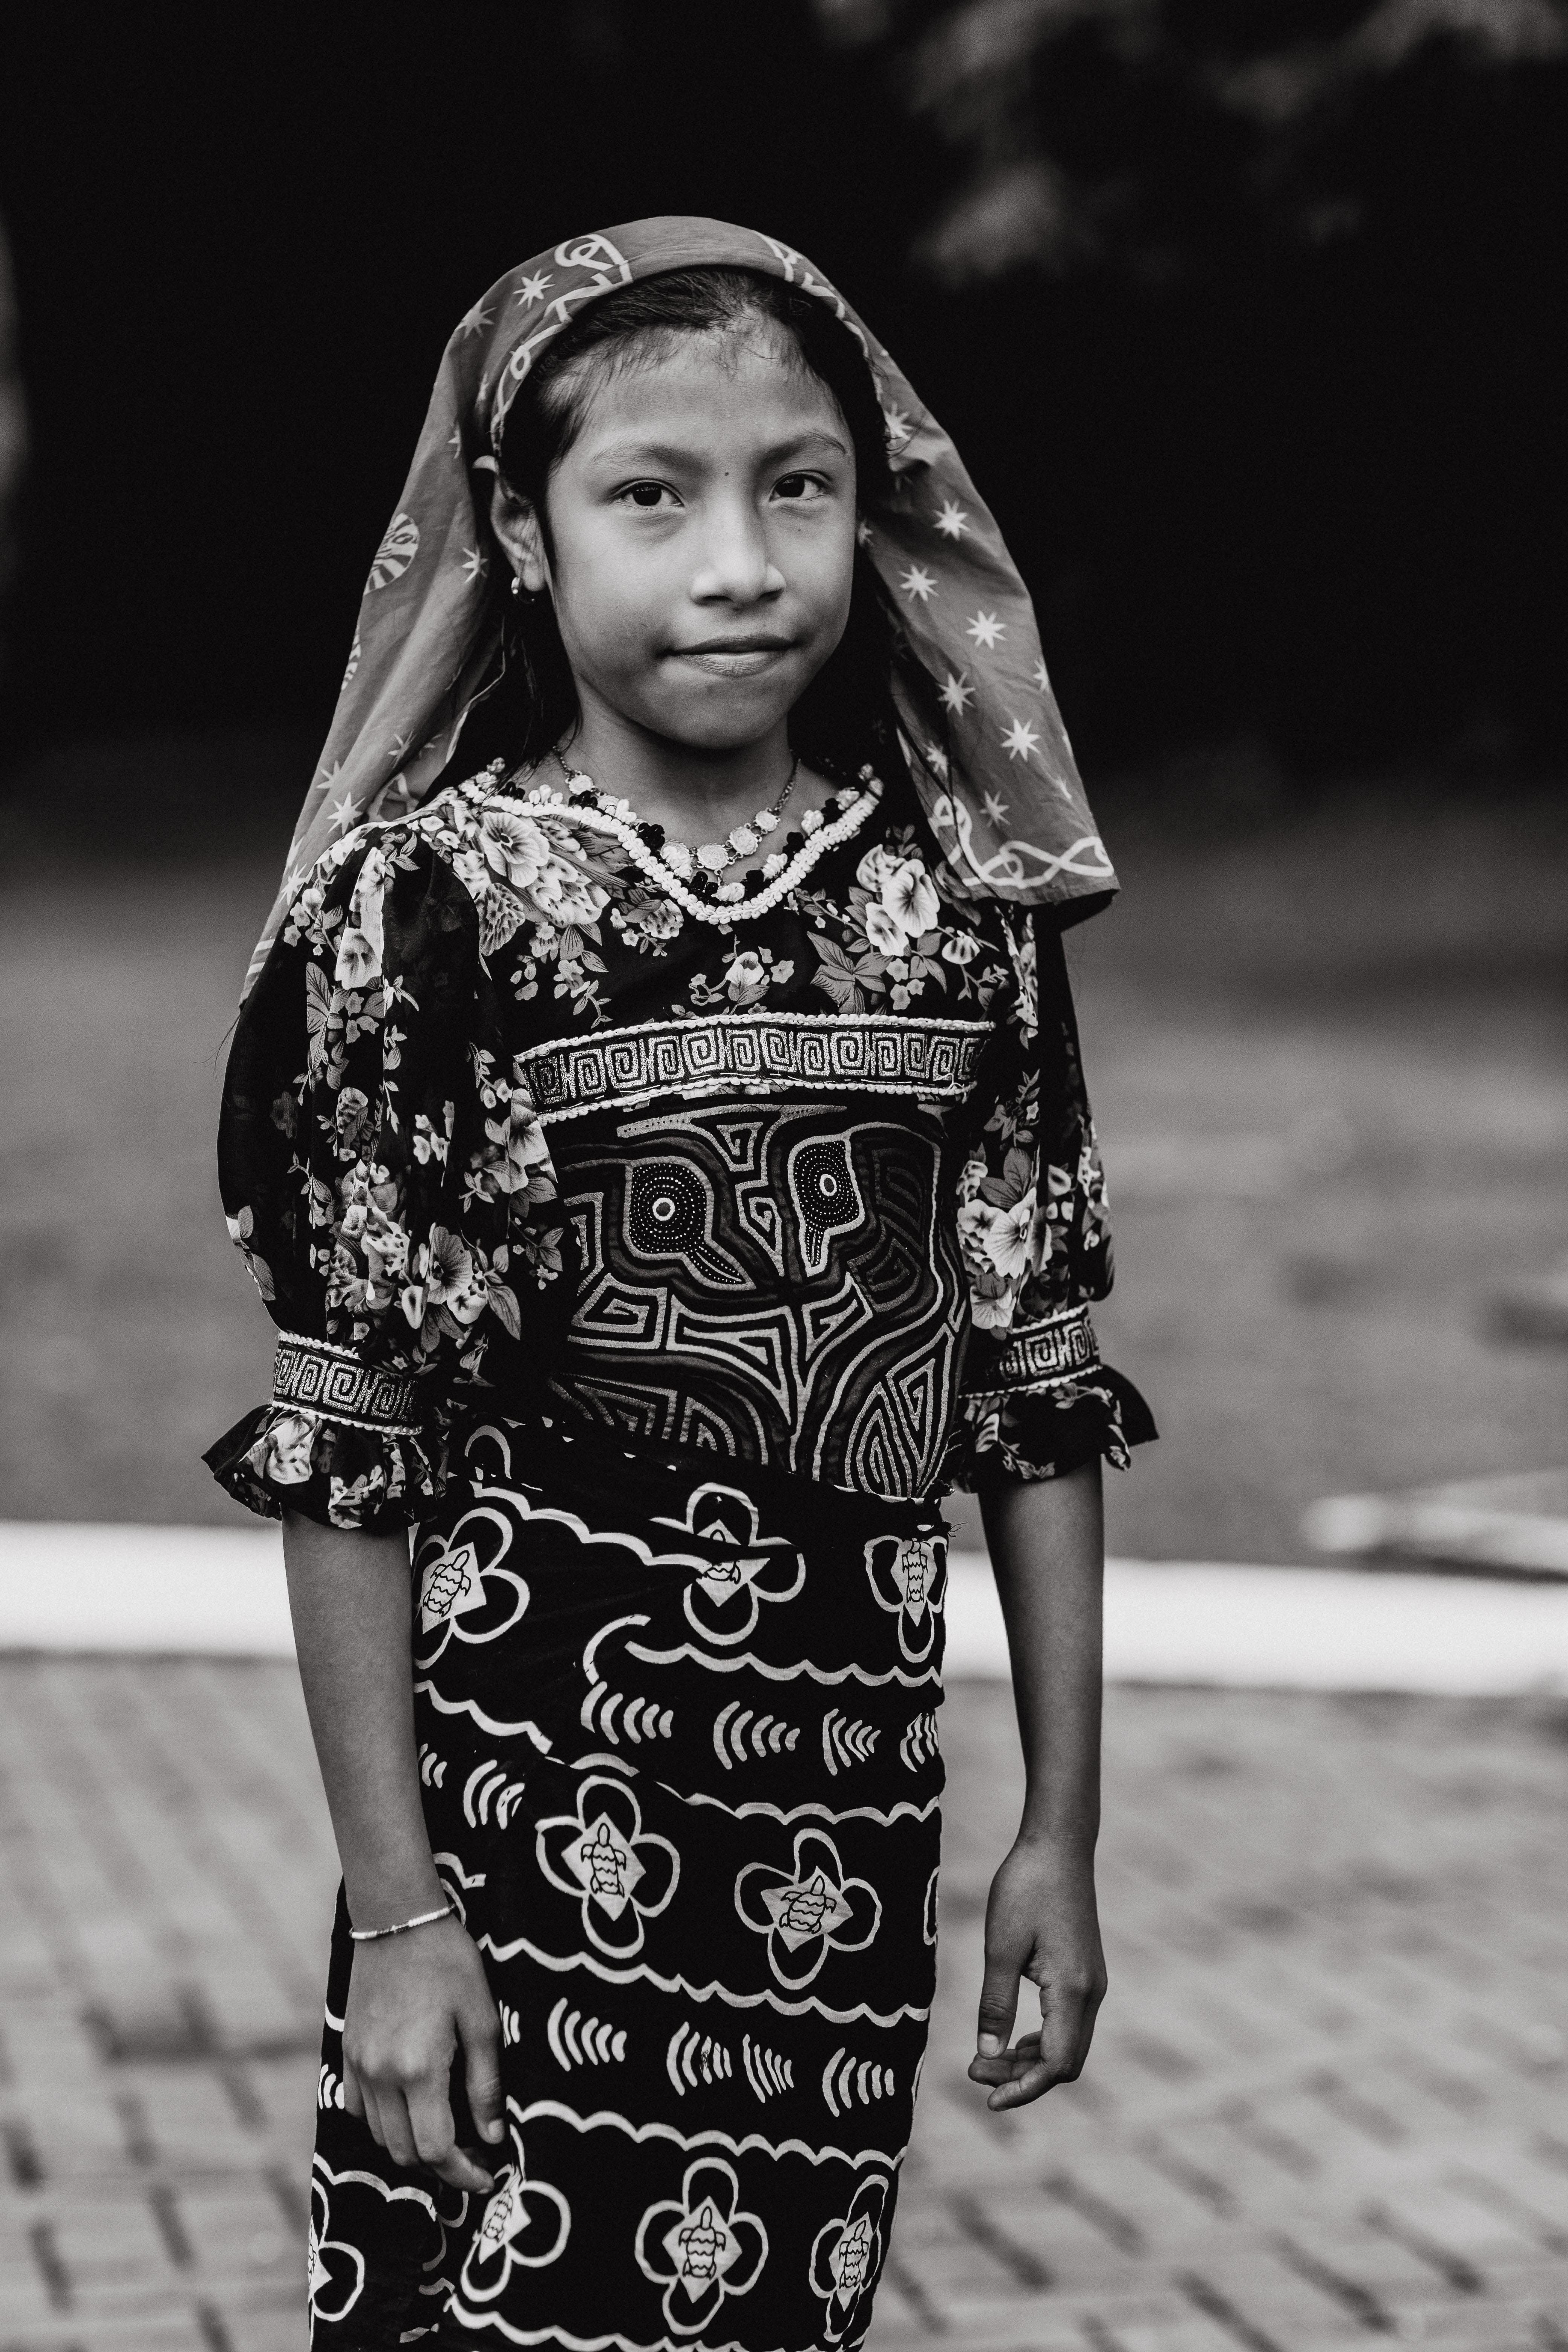 Grayscale Photography of Girl Wearing Quarter-sleeved Dress